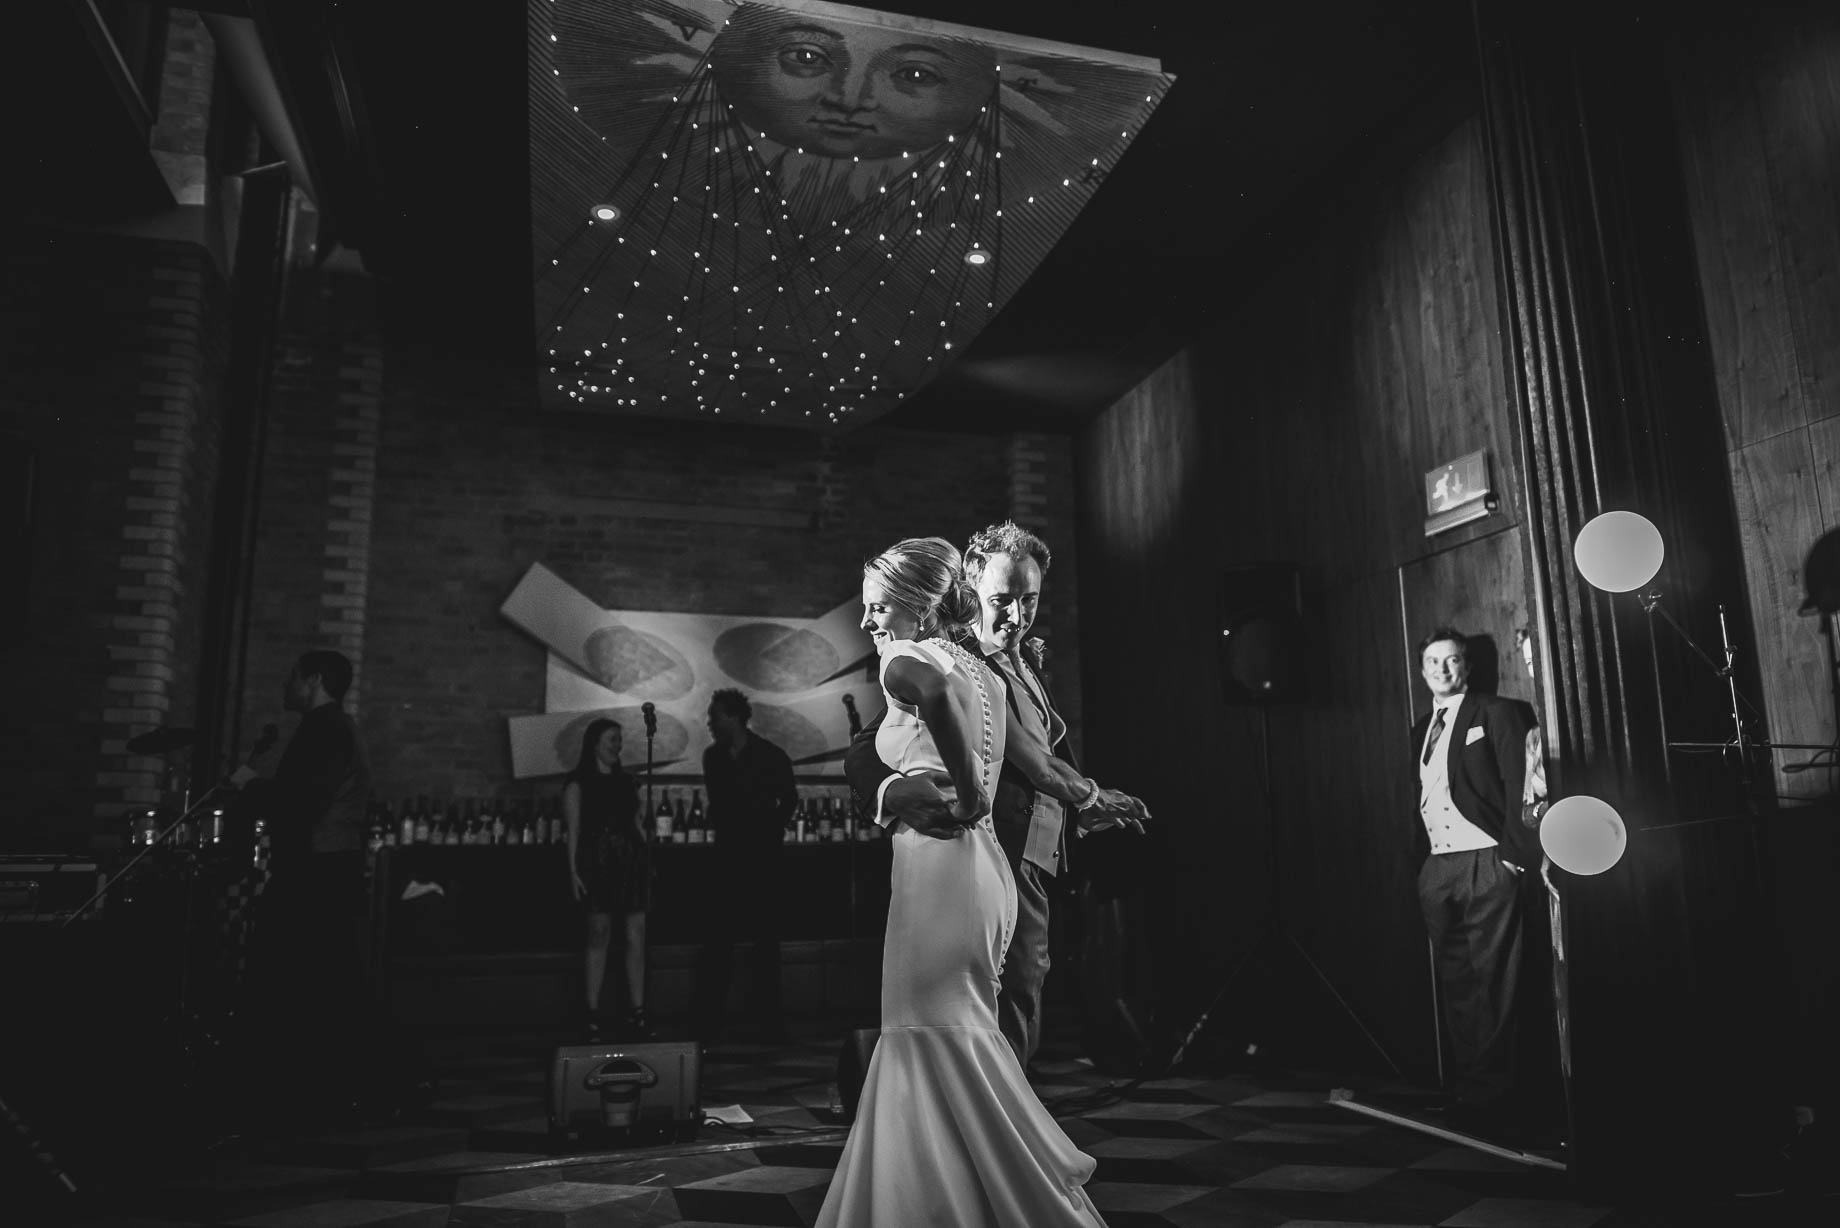 Shoreditch wedding photography - Guy Collier - Kat and Henry (198 of 200)